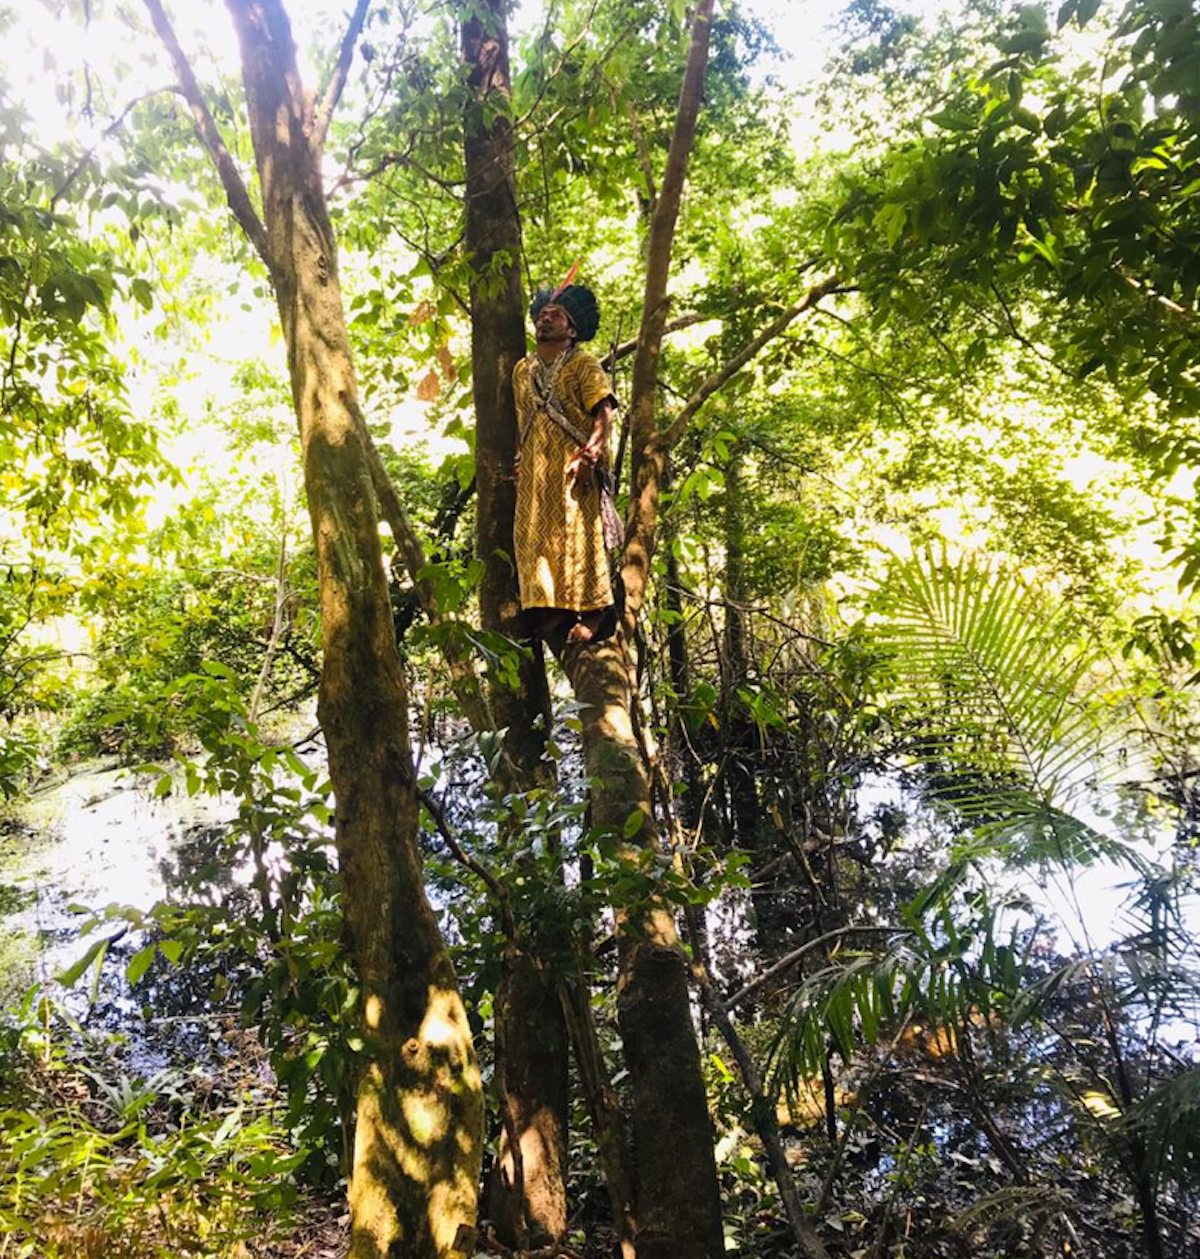 Ninawa stands at the crux of two branches high in a tree.